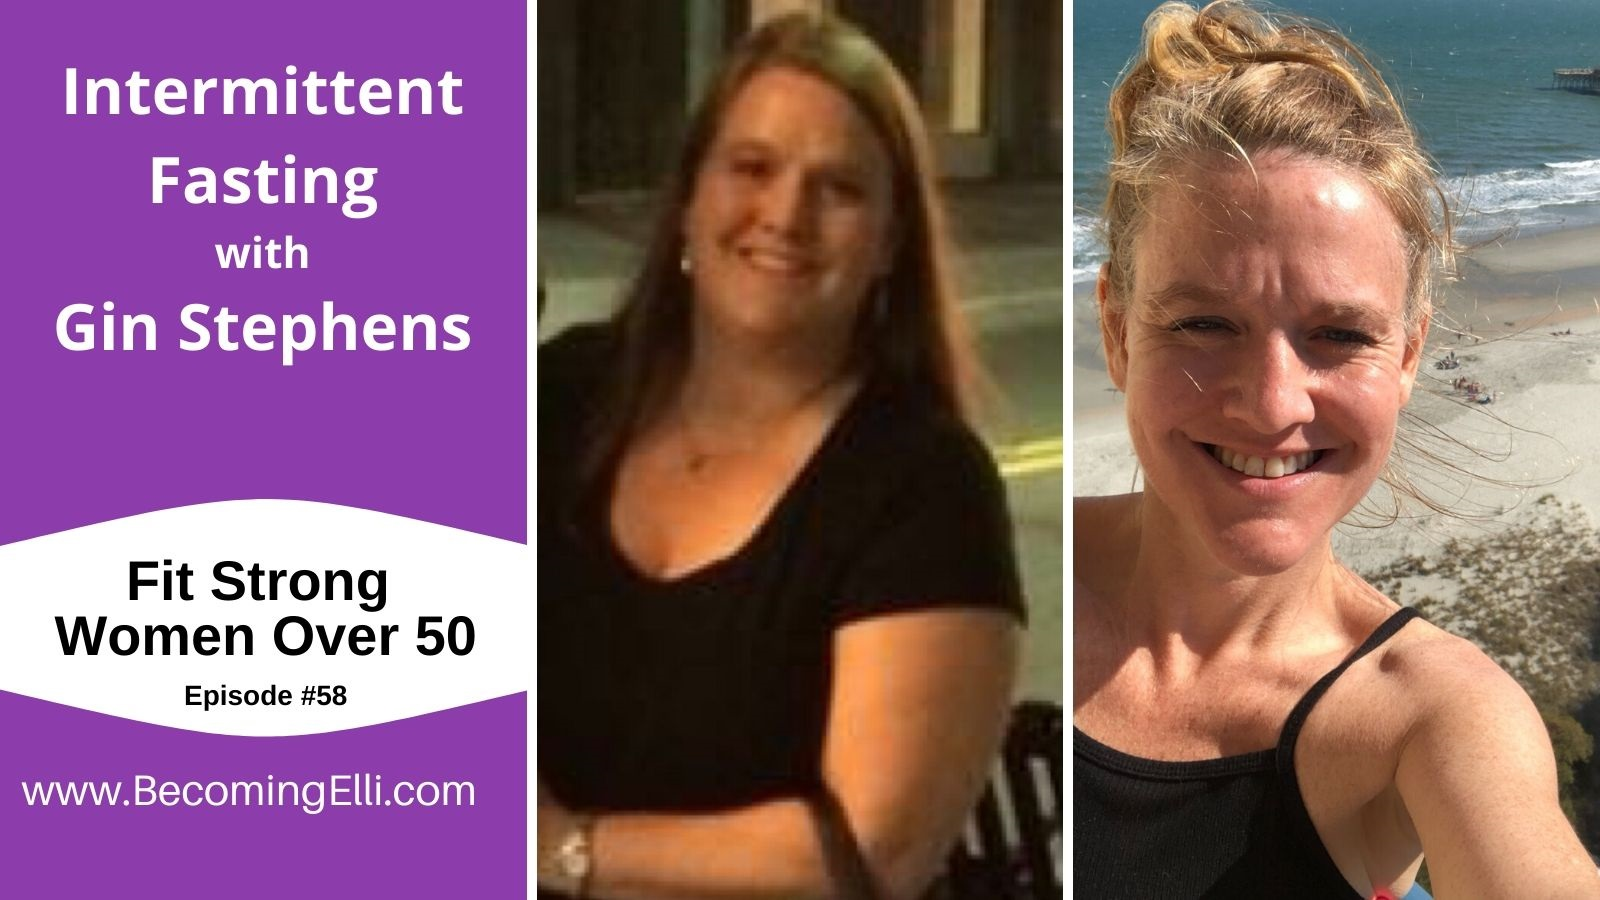 Intermittent Fasting with Gin Stephens BE